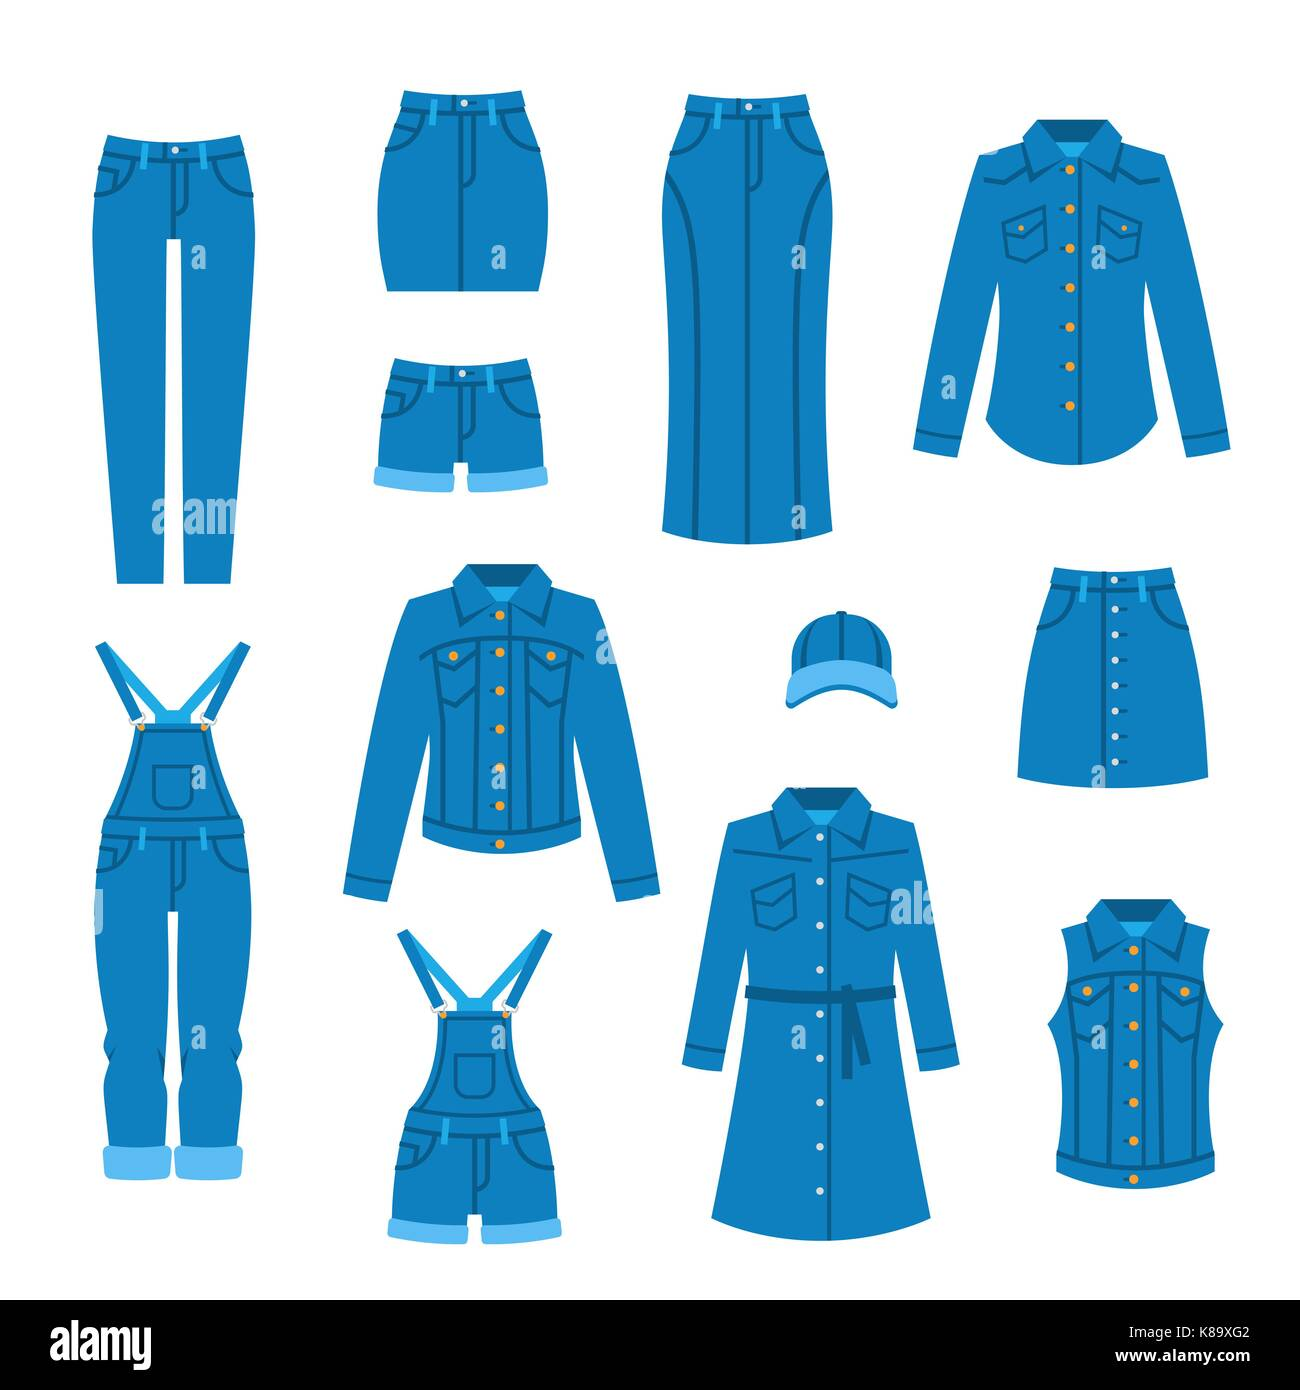 Denim Clothes Flat Icons Fashion Style Vector Casual Outfit For Stock Vector Image Art Alamy